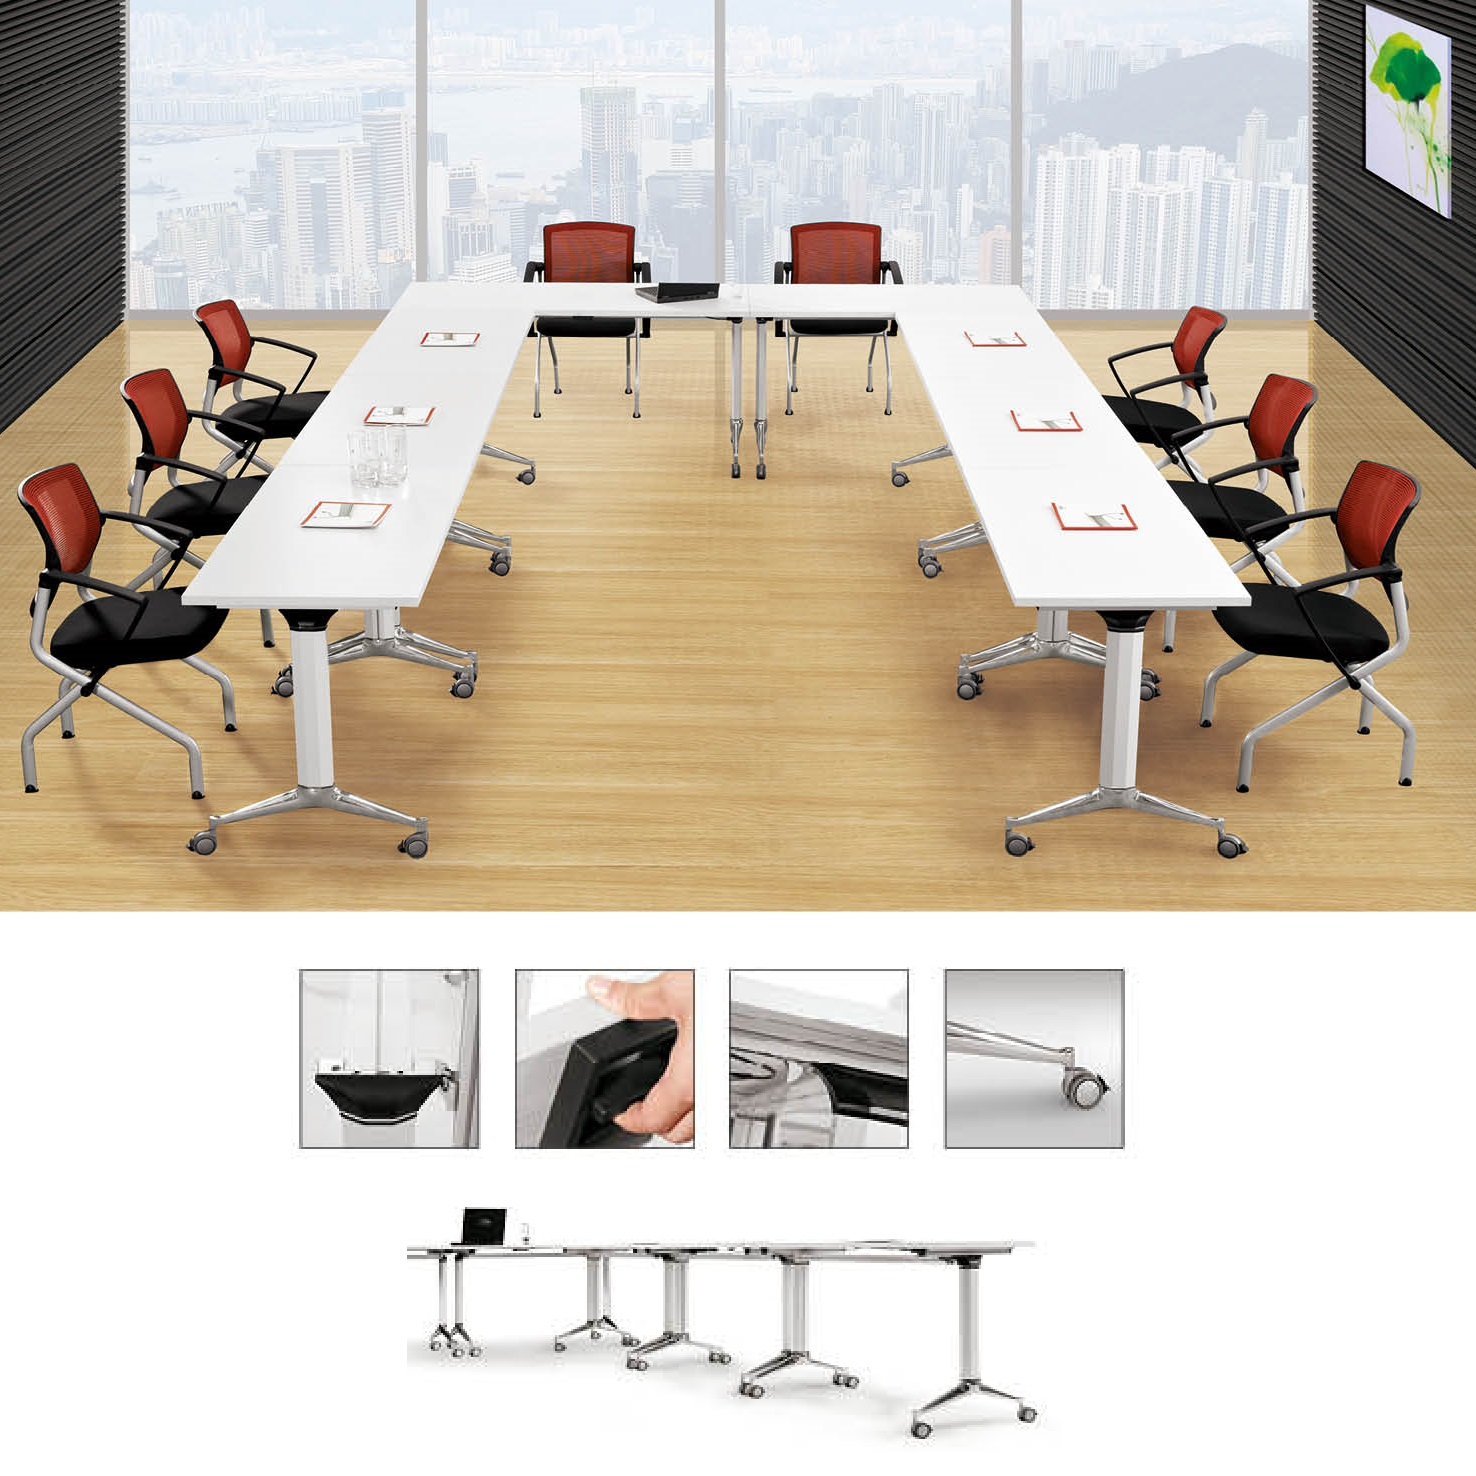 Excellent Foldable Office Table Foldable Desk And Tables For Offices Download Free Architecture Designs Embacsunscenecom